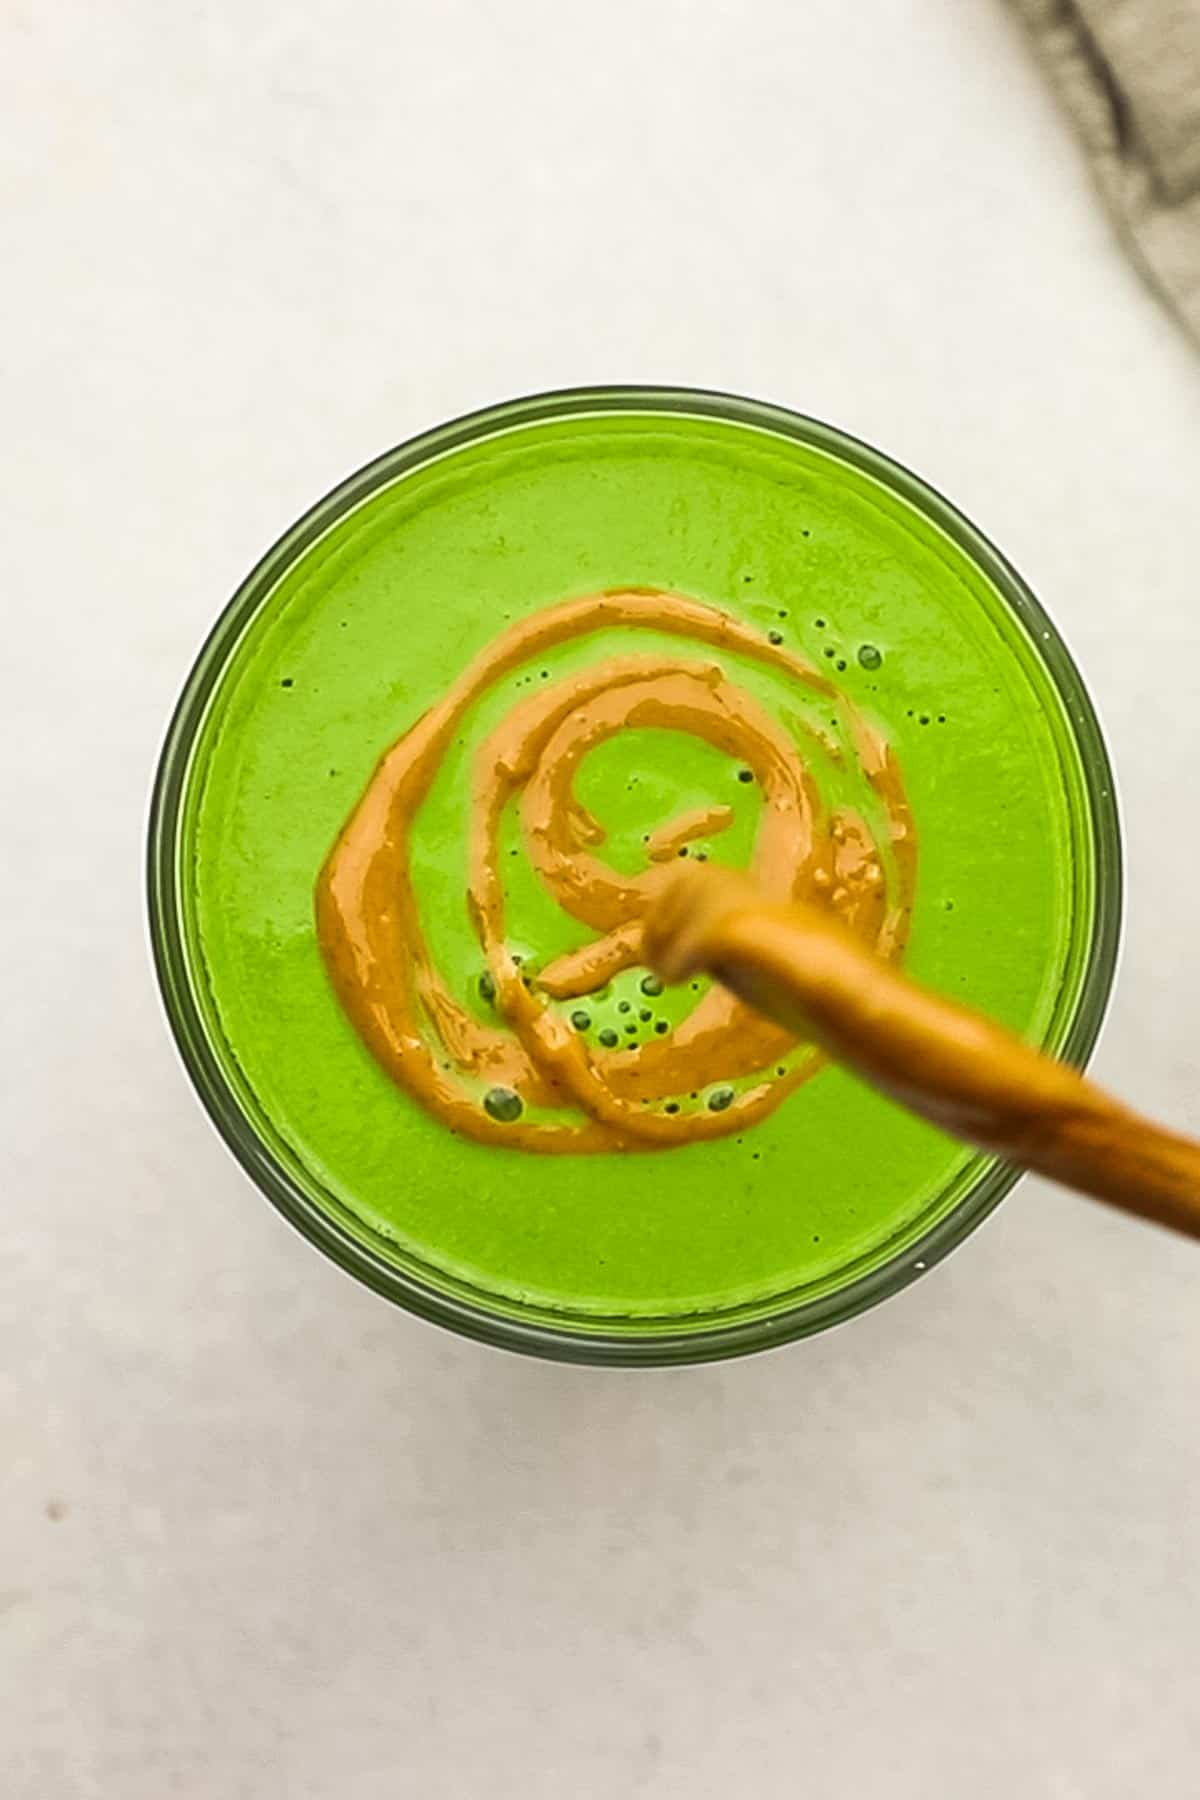 A peanut butter swirl being added to the top of a green smoothie